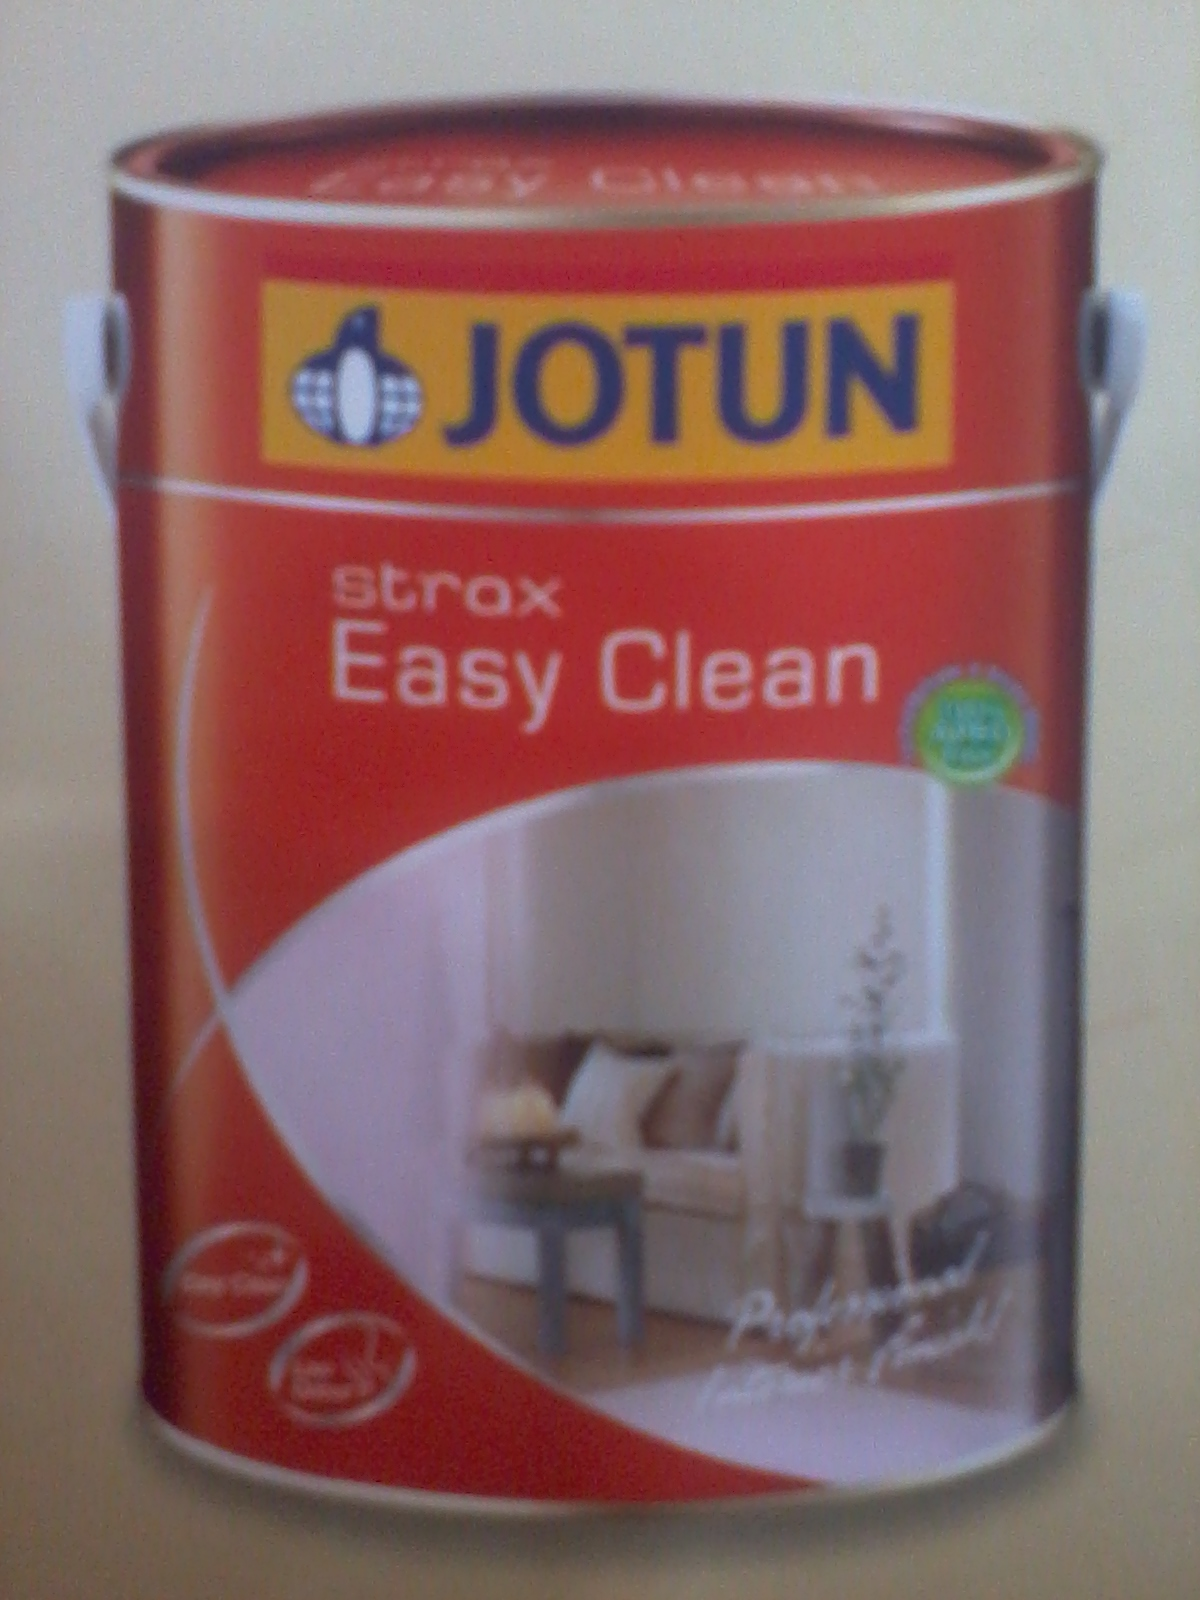 New Launch- Jotun Strax Easy Clean (23/04/2011)